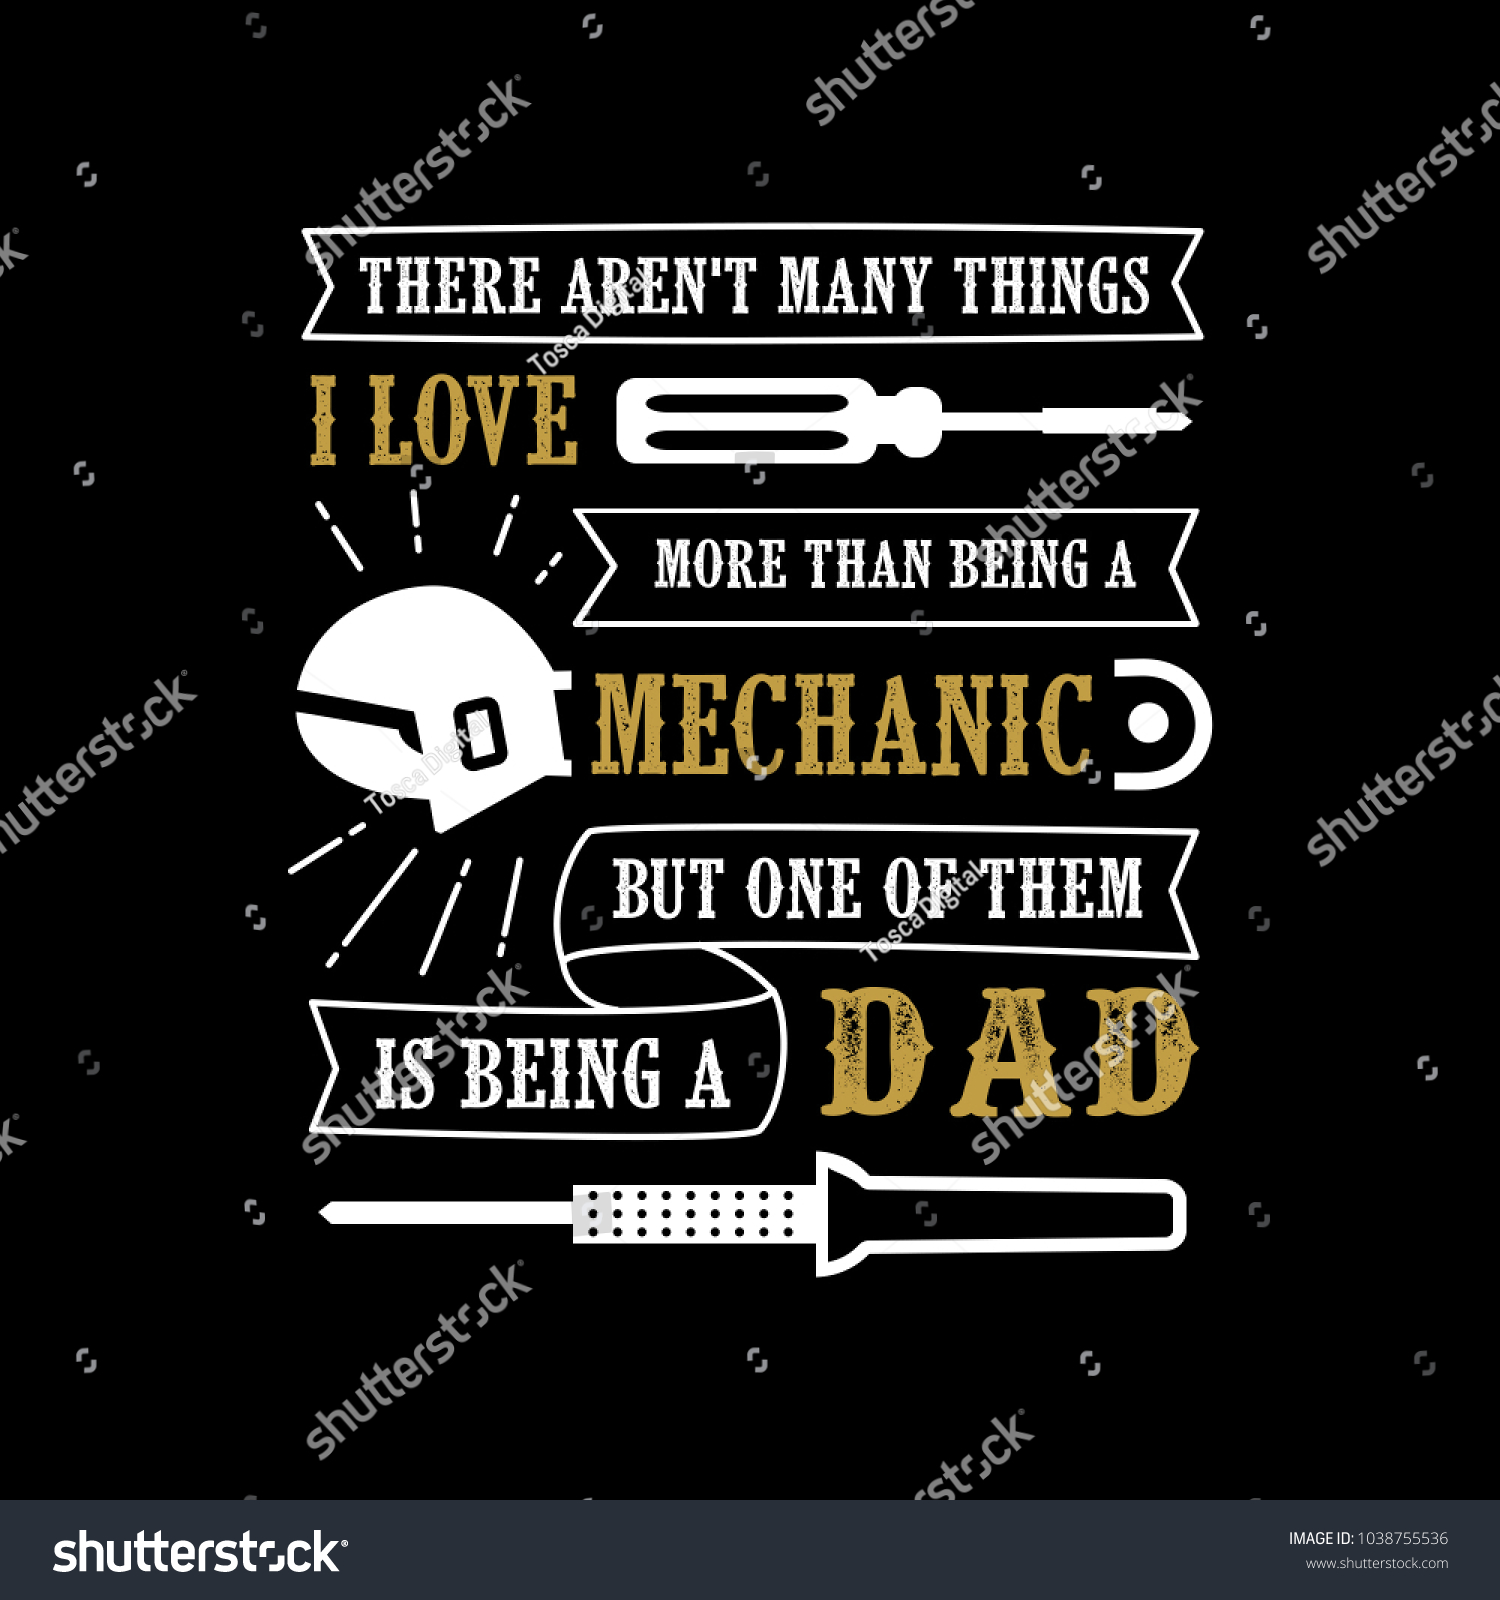 9a681a1e Father's Day Saying & quotes. Mechanic Dad. 100% vector ready for print,  Best for t-shirt, sticker, poster/frame, mug, Pillow, phone & laptop cases.